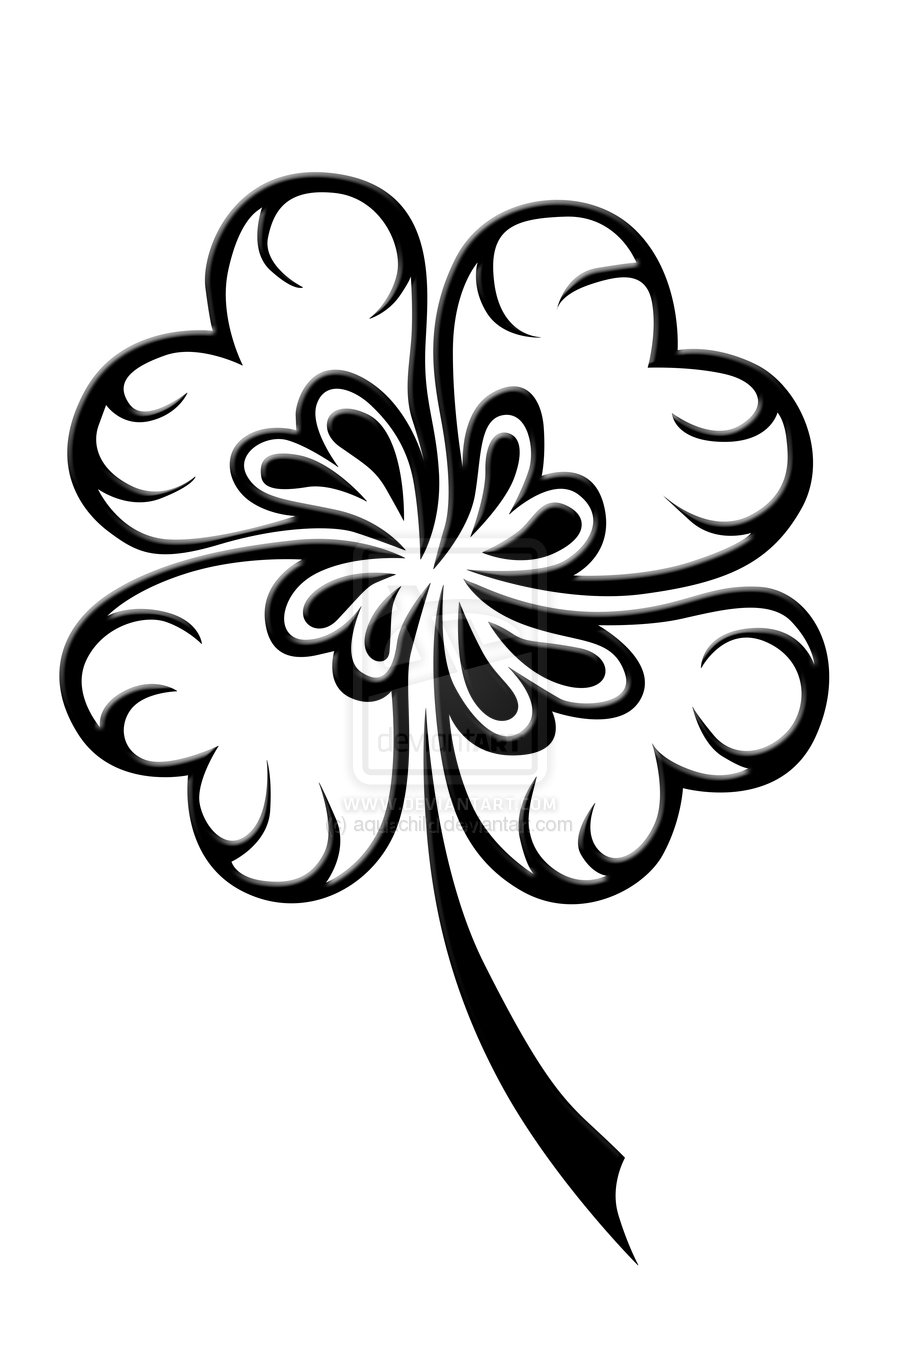 4 leaf clover coloring page - Coloring Pages & Pictures ...